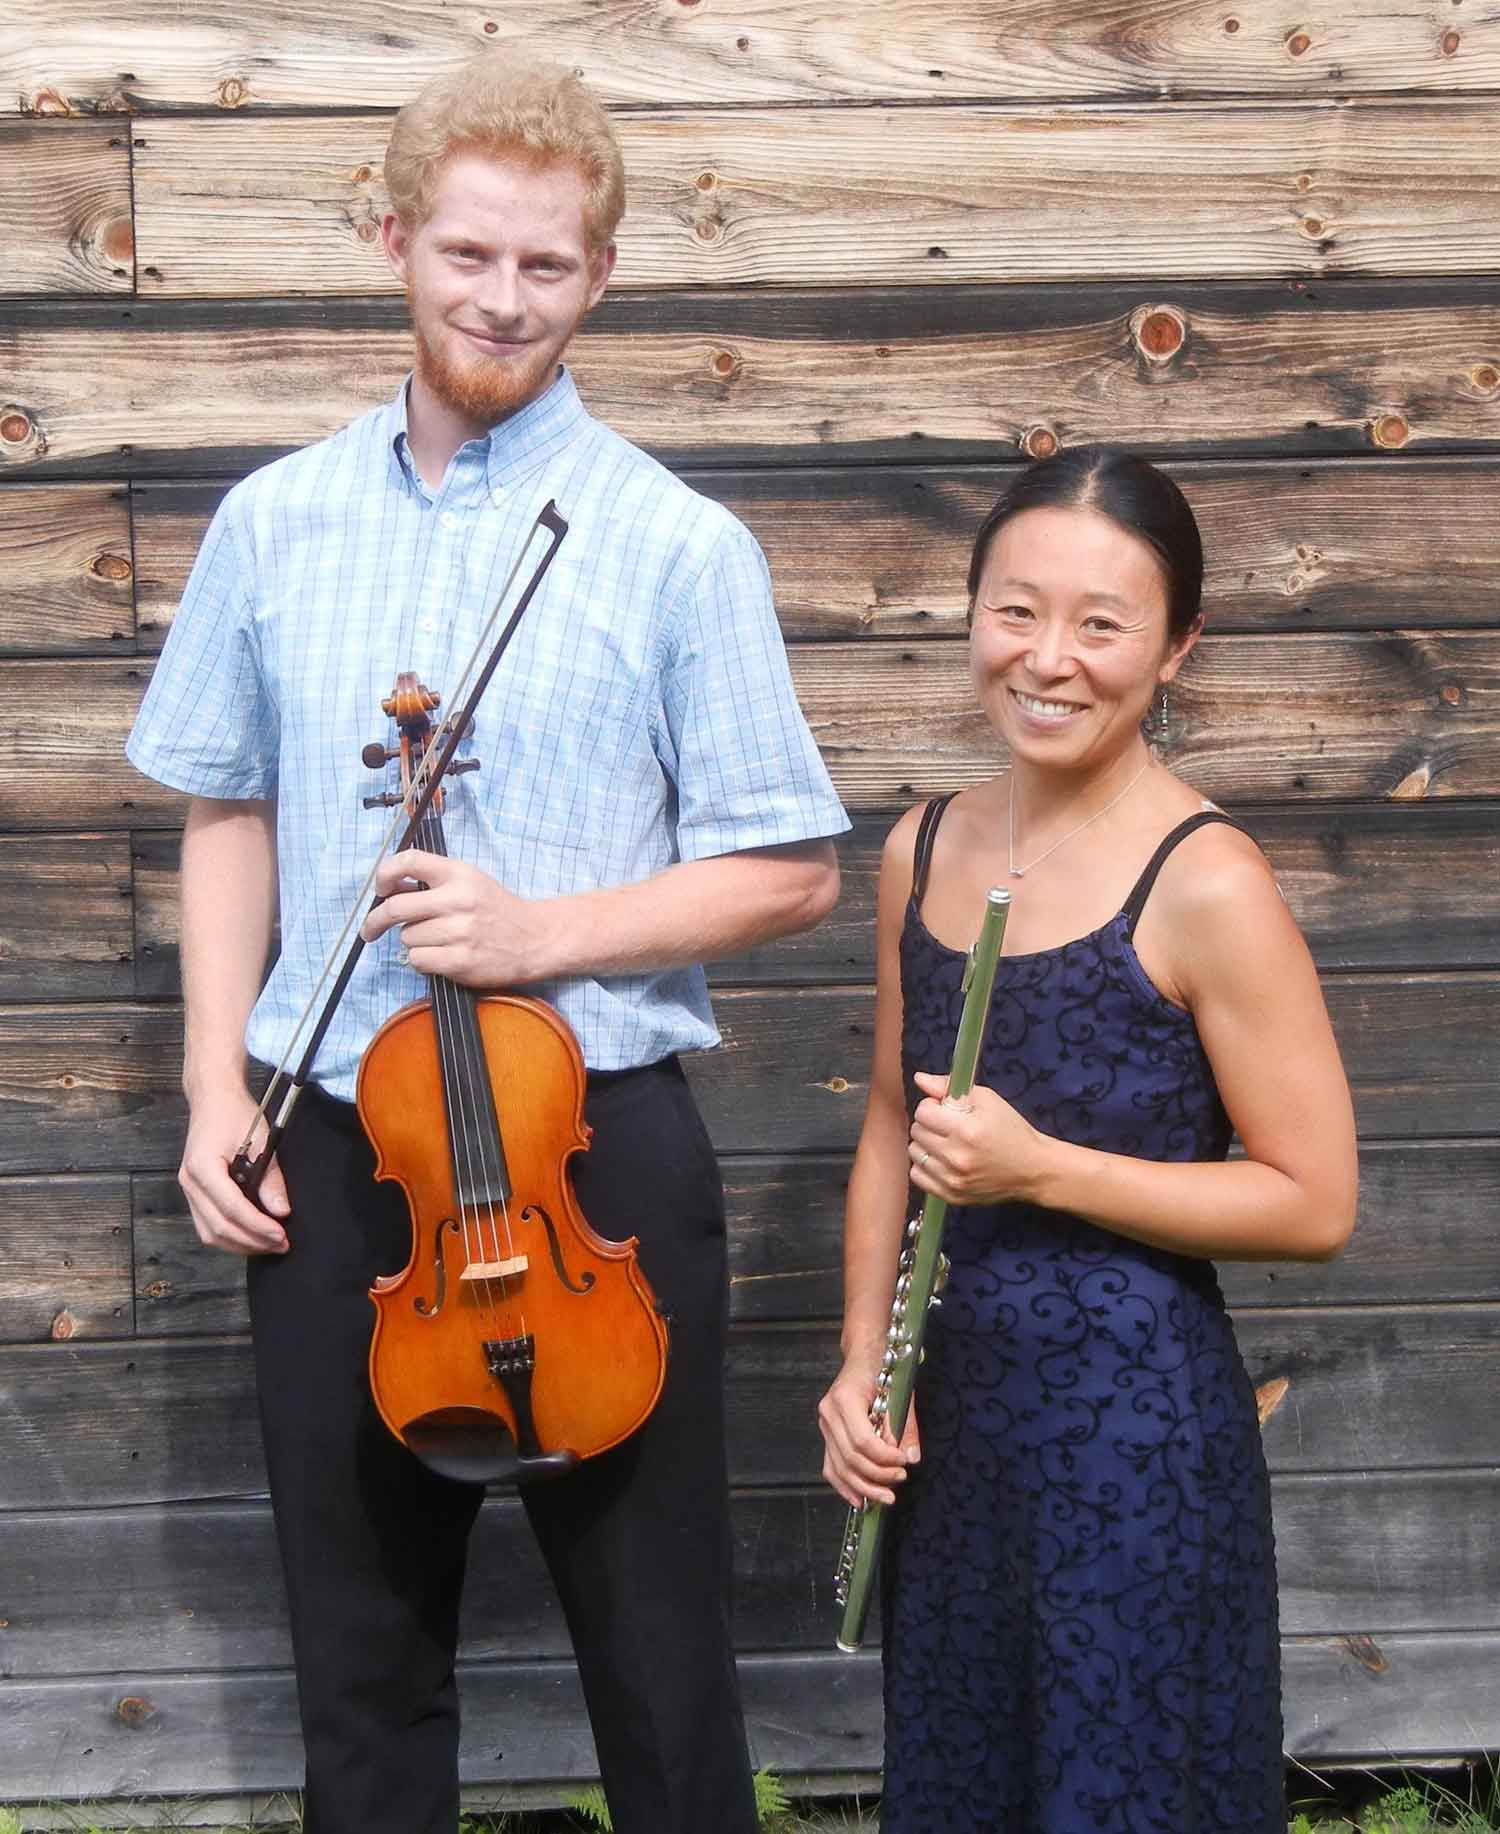 The Windfern Ensemble - will play both classical and popular selections for the afternoon get-together.